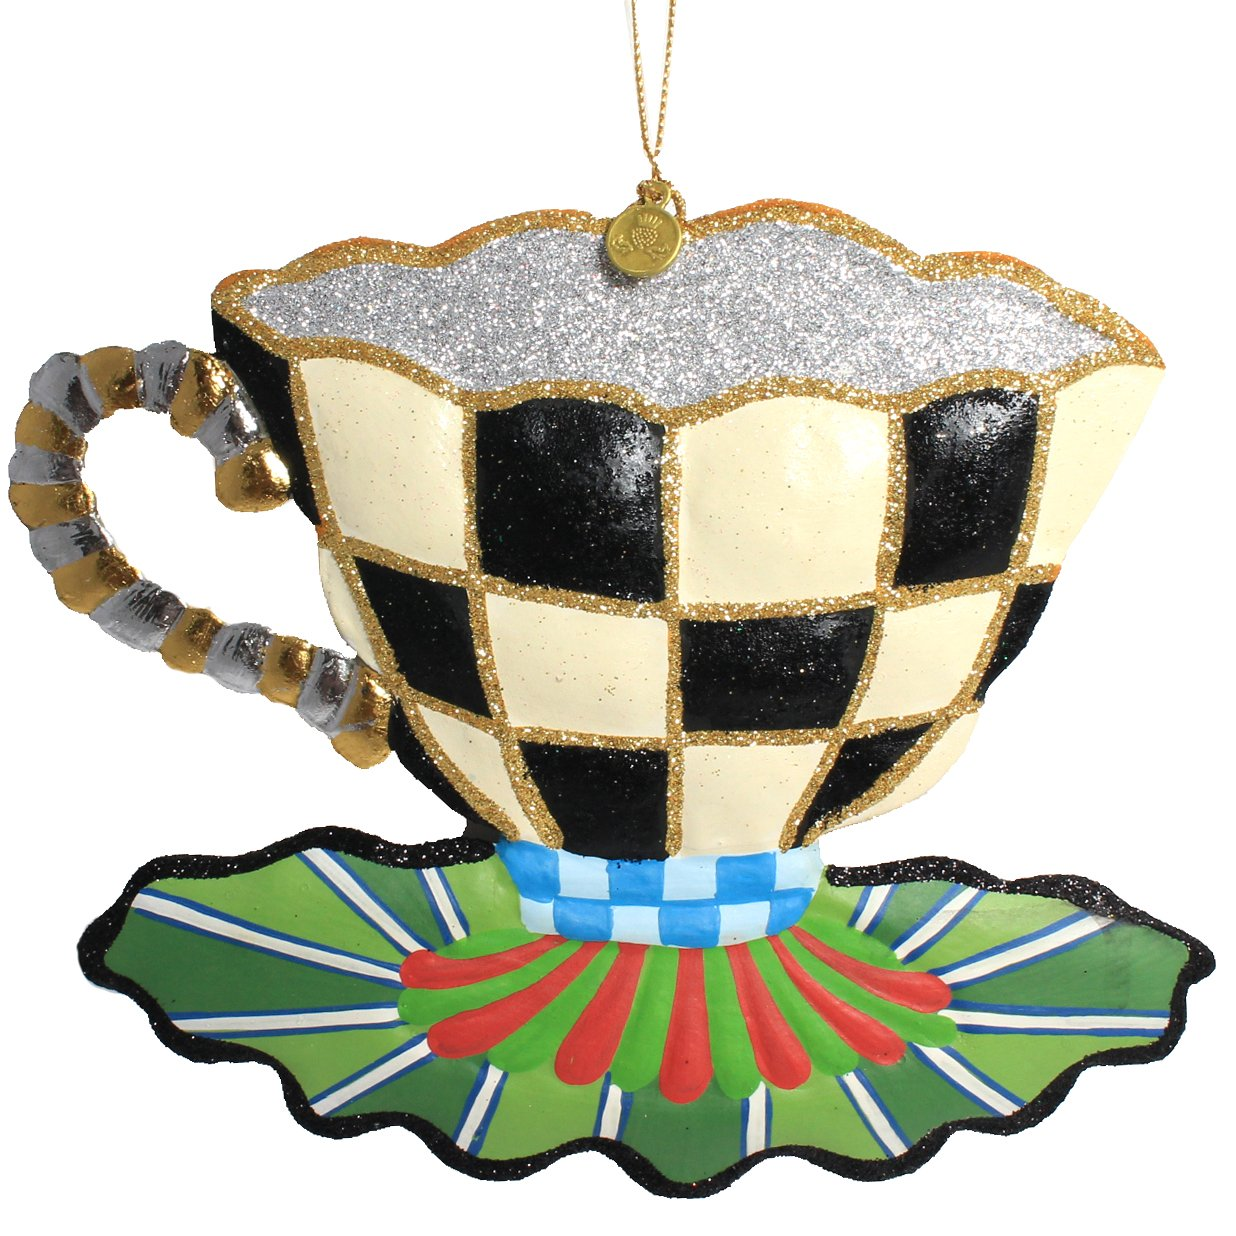 MacKenzie-Childs Courtly Check Hand-Painted Tea Cup Christmas Ornament with Green Base